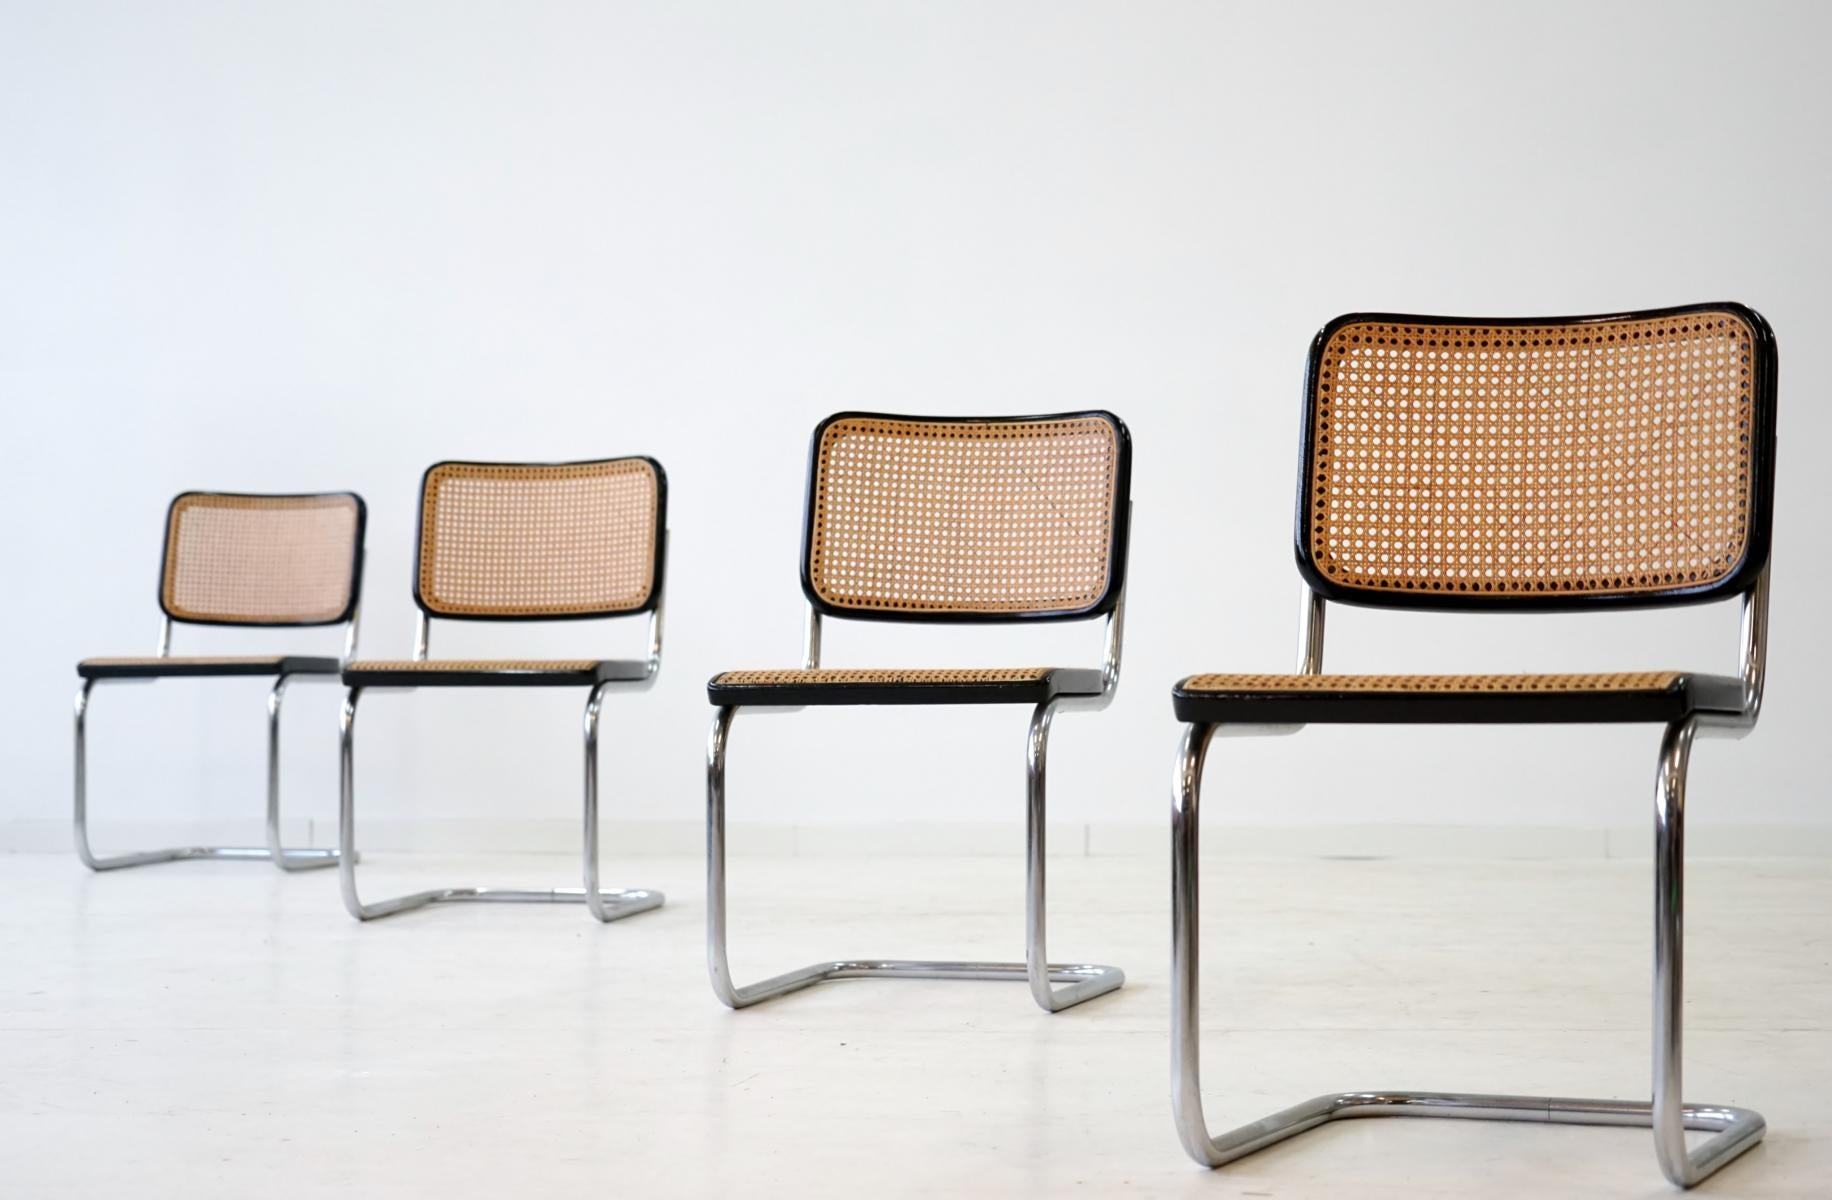 Thonet S32 Set Of Four S 32 Cantilever Chair By Marcel Breuer Mart Stam For Thonet 1920s